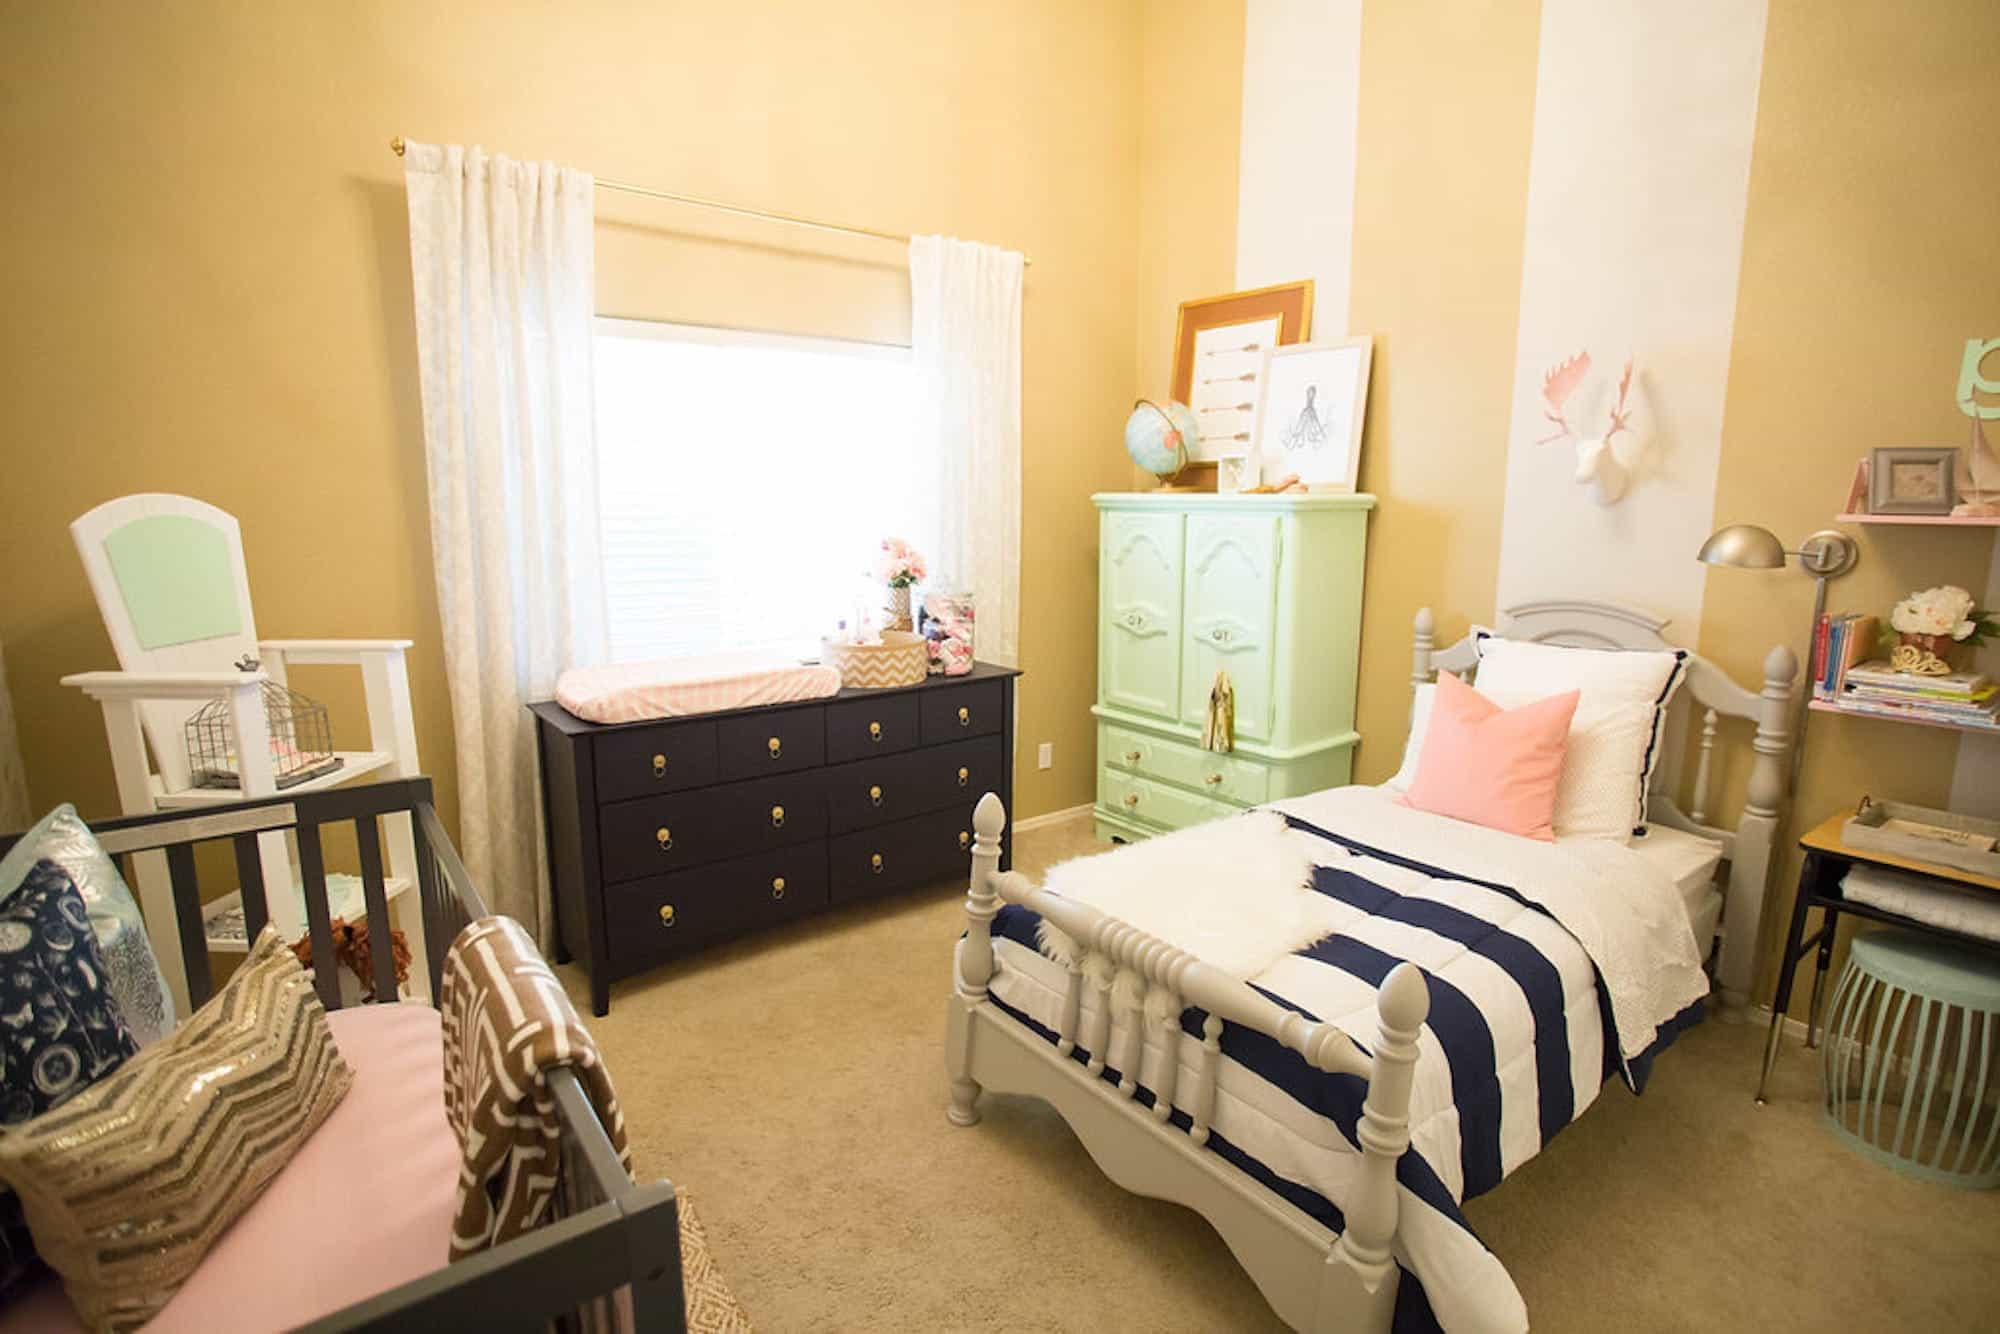 Chic Toddler Room And Nursery Combination Idea (Image 5 of 27)